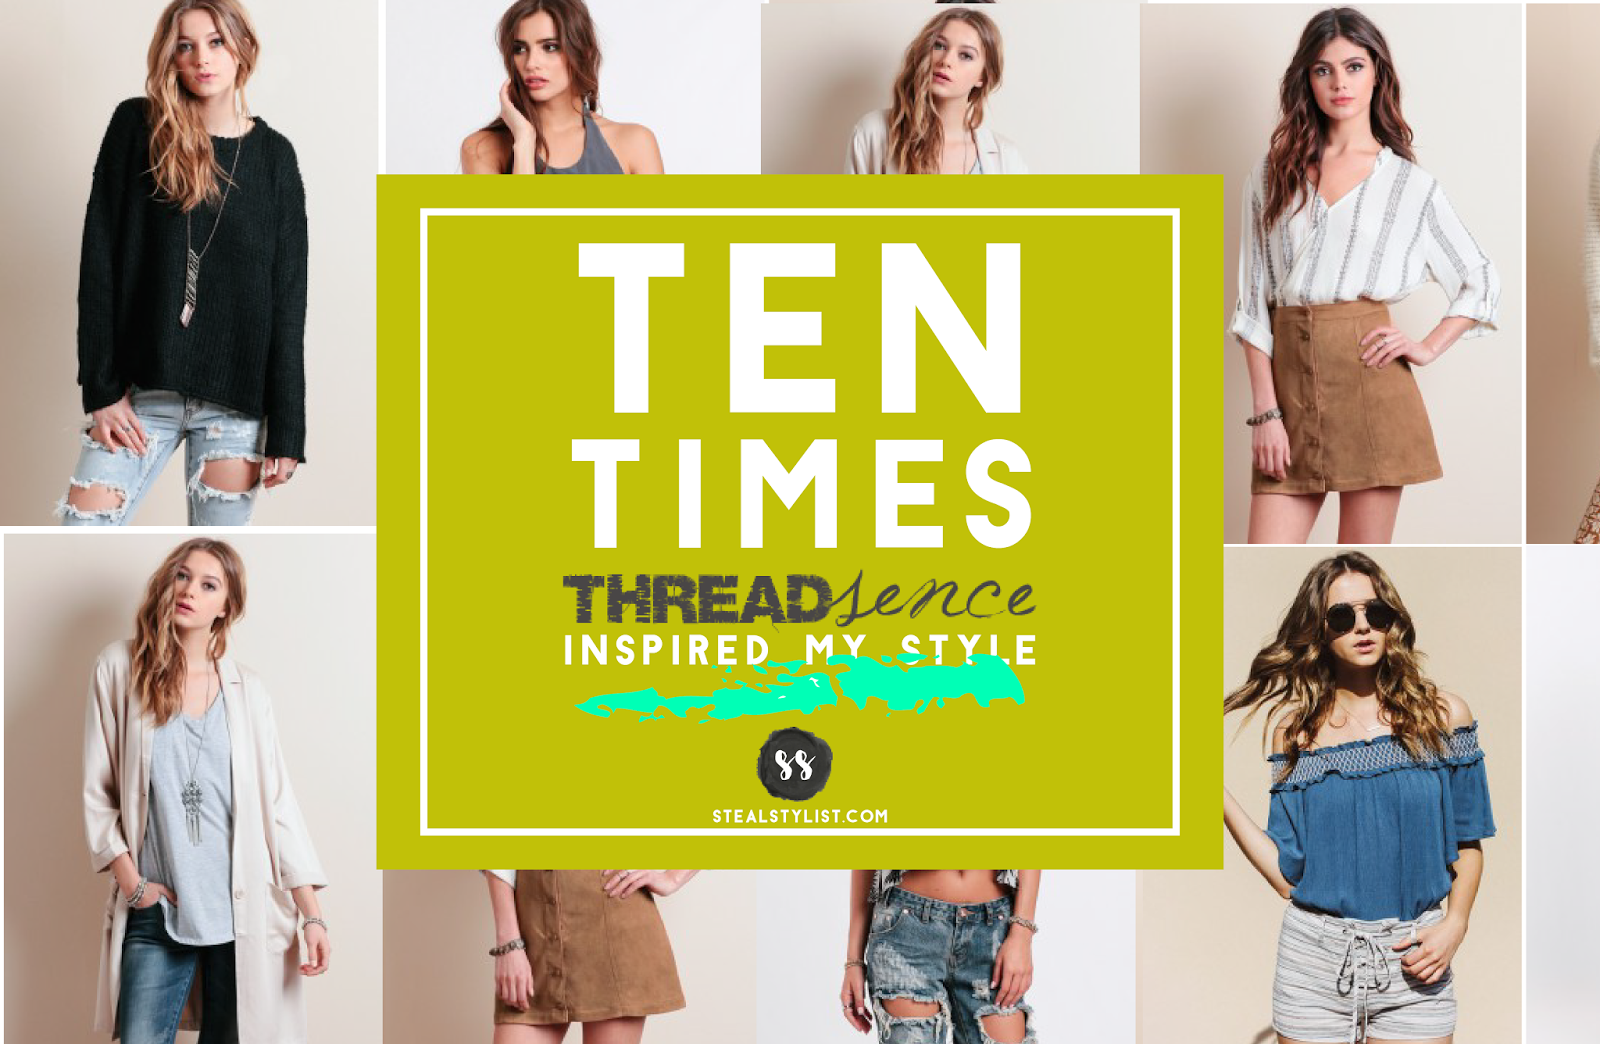 10 times Threadsence inspired my personal style